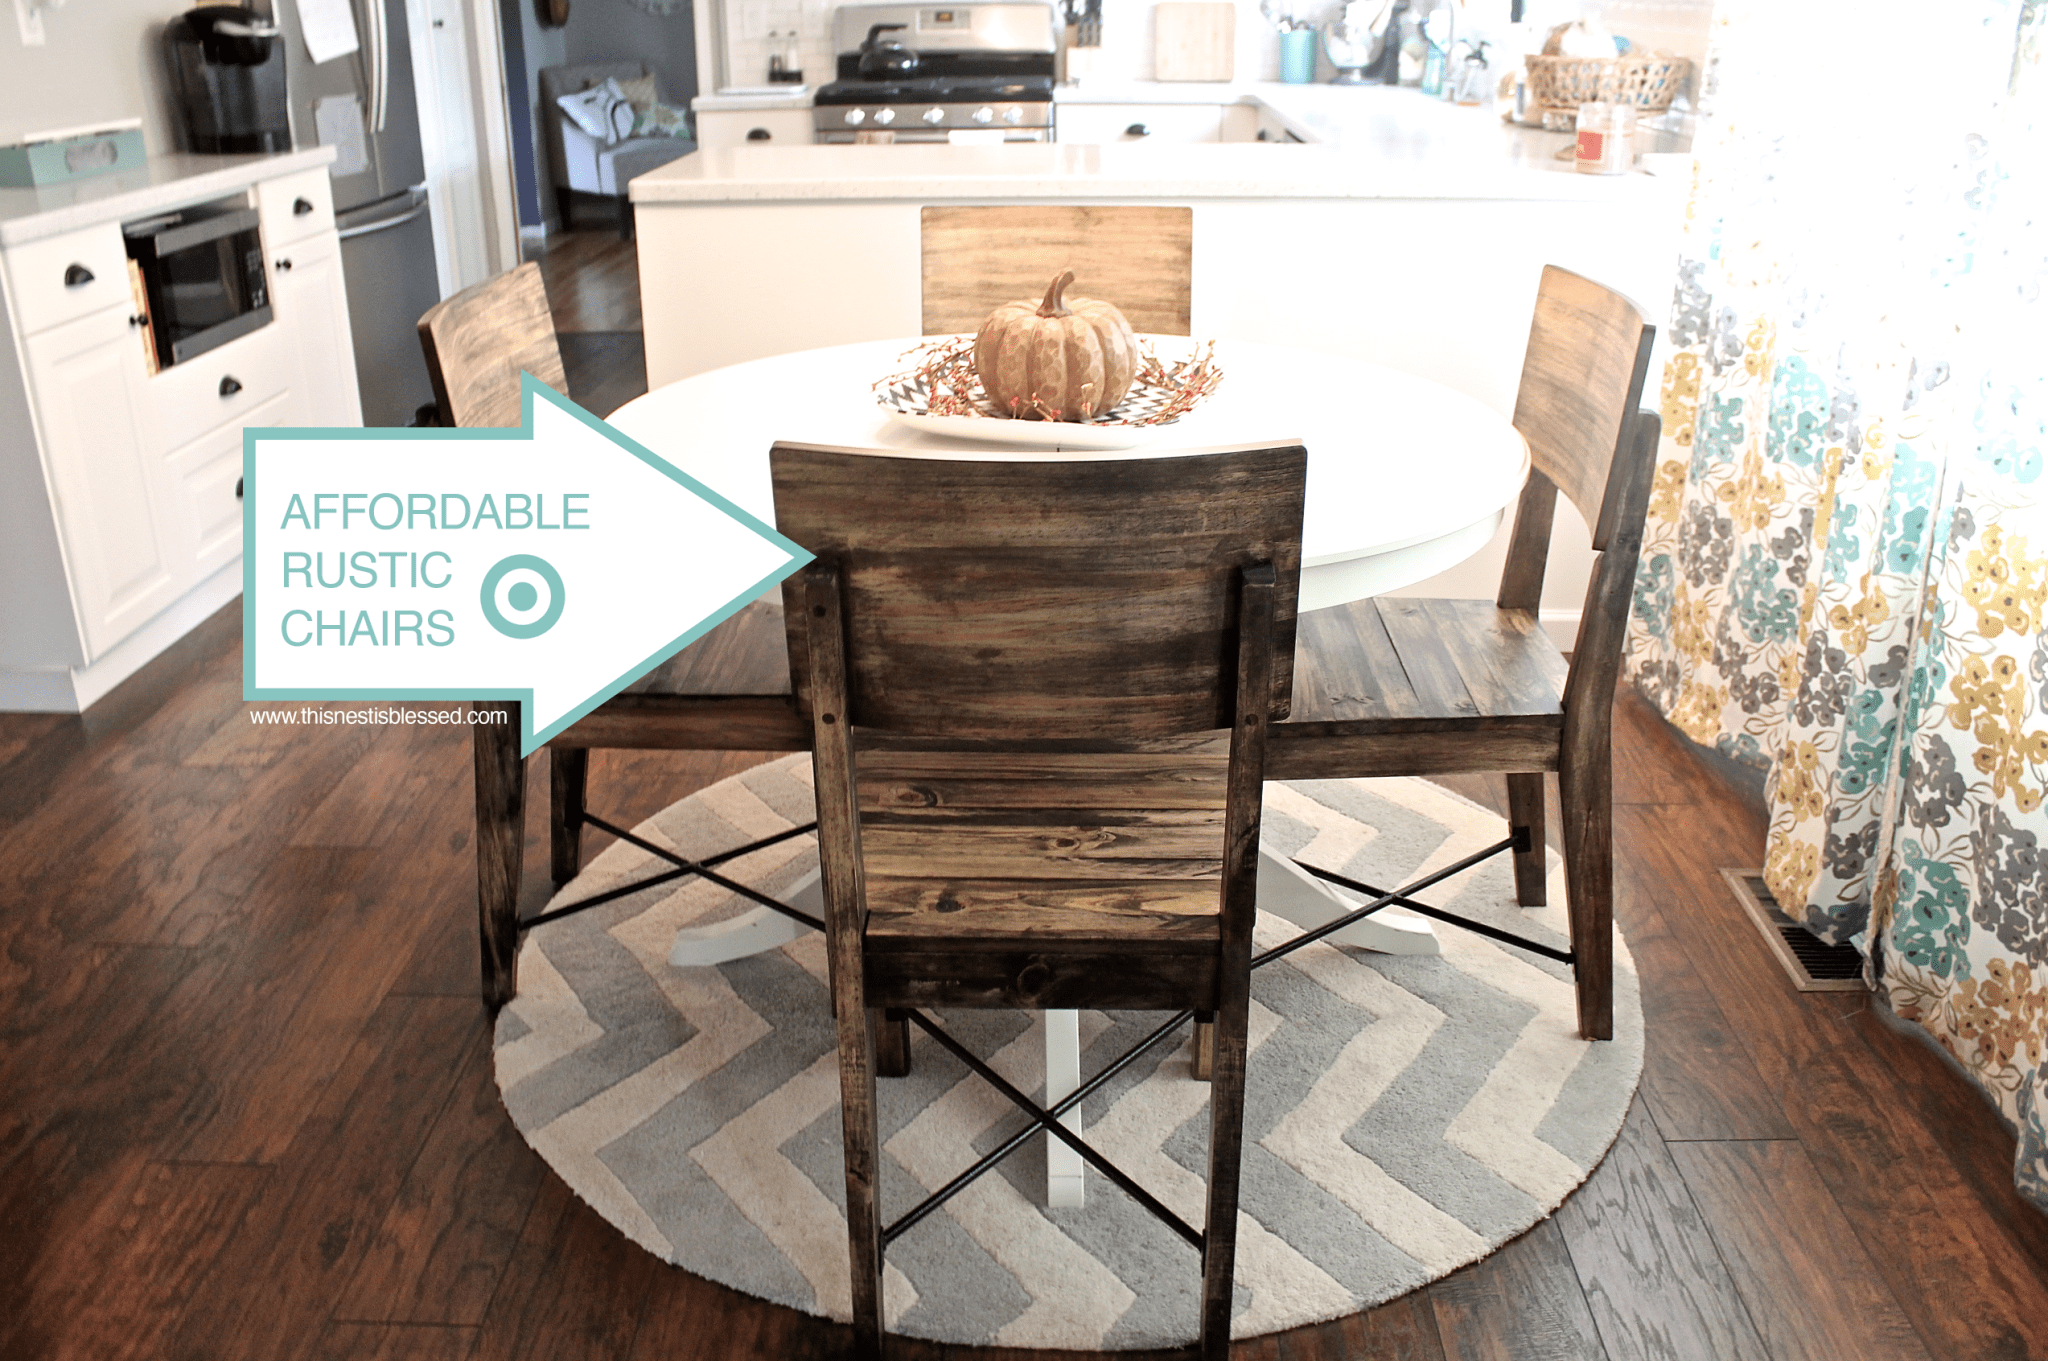 This Nest Is Blessed DIY Learned and Shared : Affordable Rustic Chairs Mudhut Perdana Dining Chairs Target from thisnestisblessed.wordpress.com size 2048 x 1361 png 1264kB